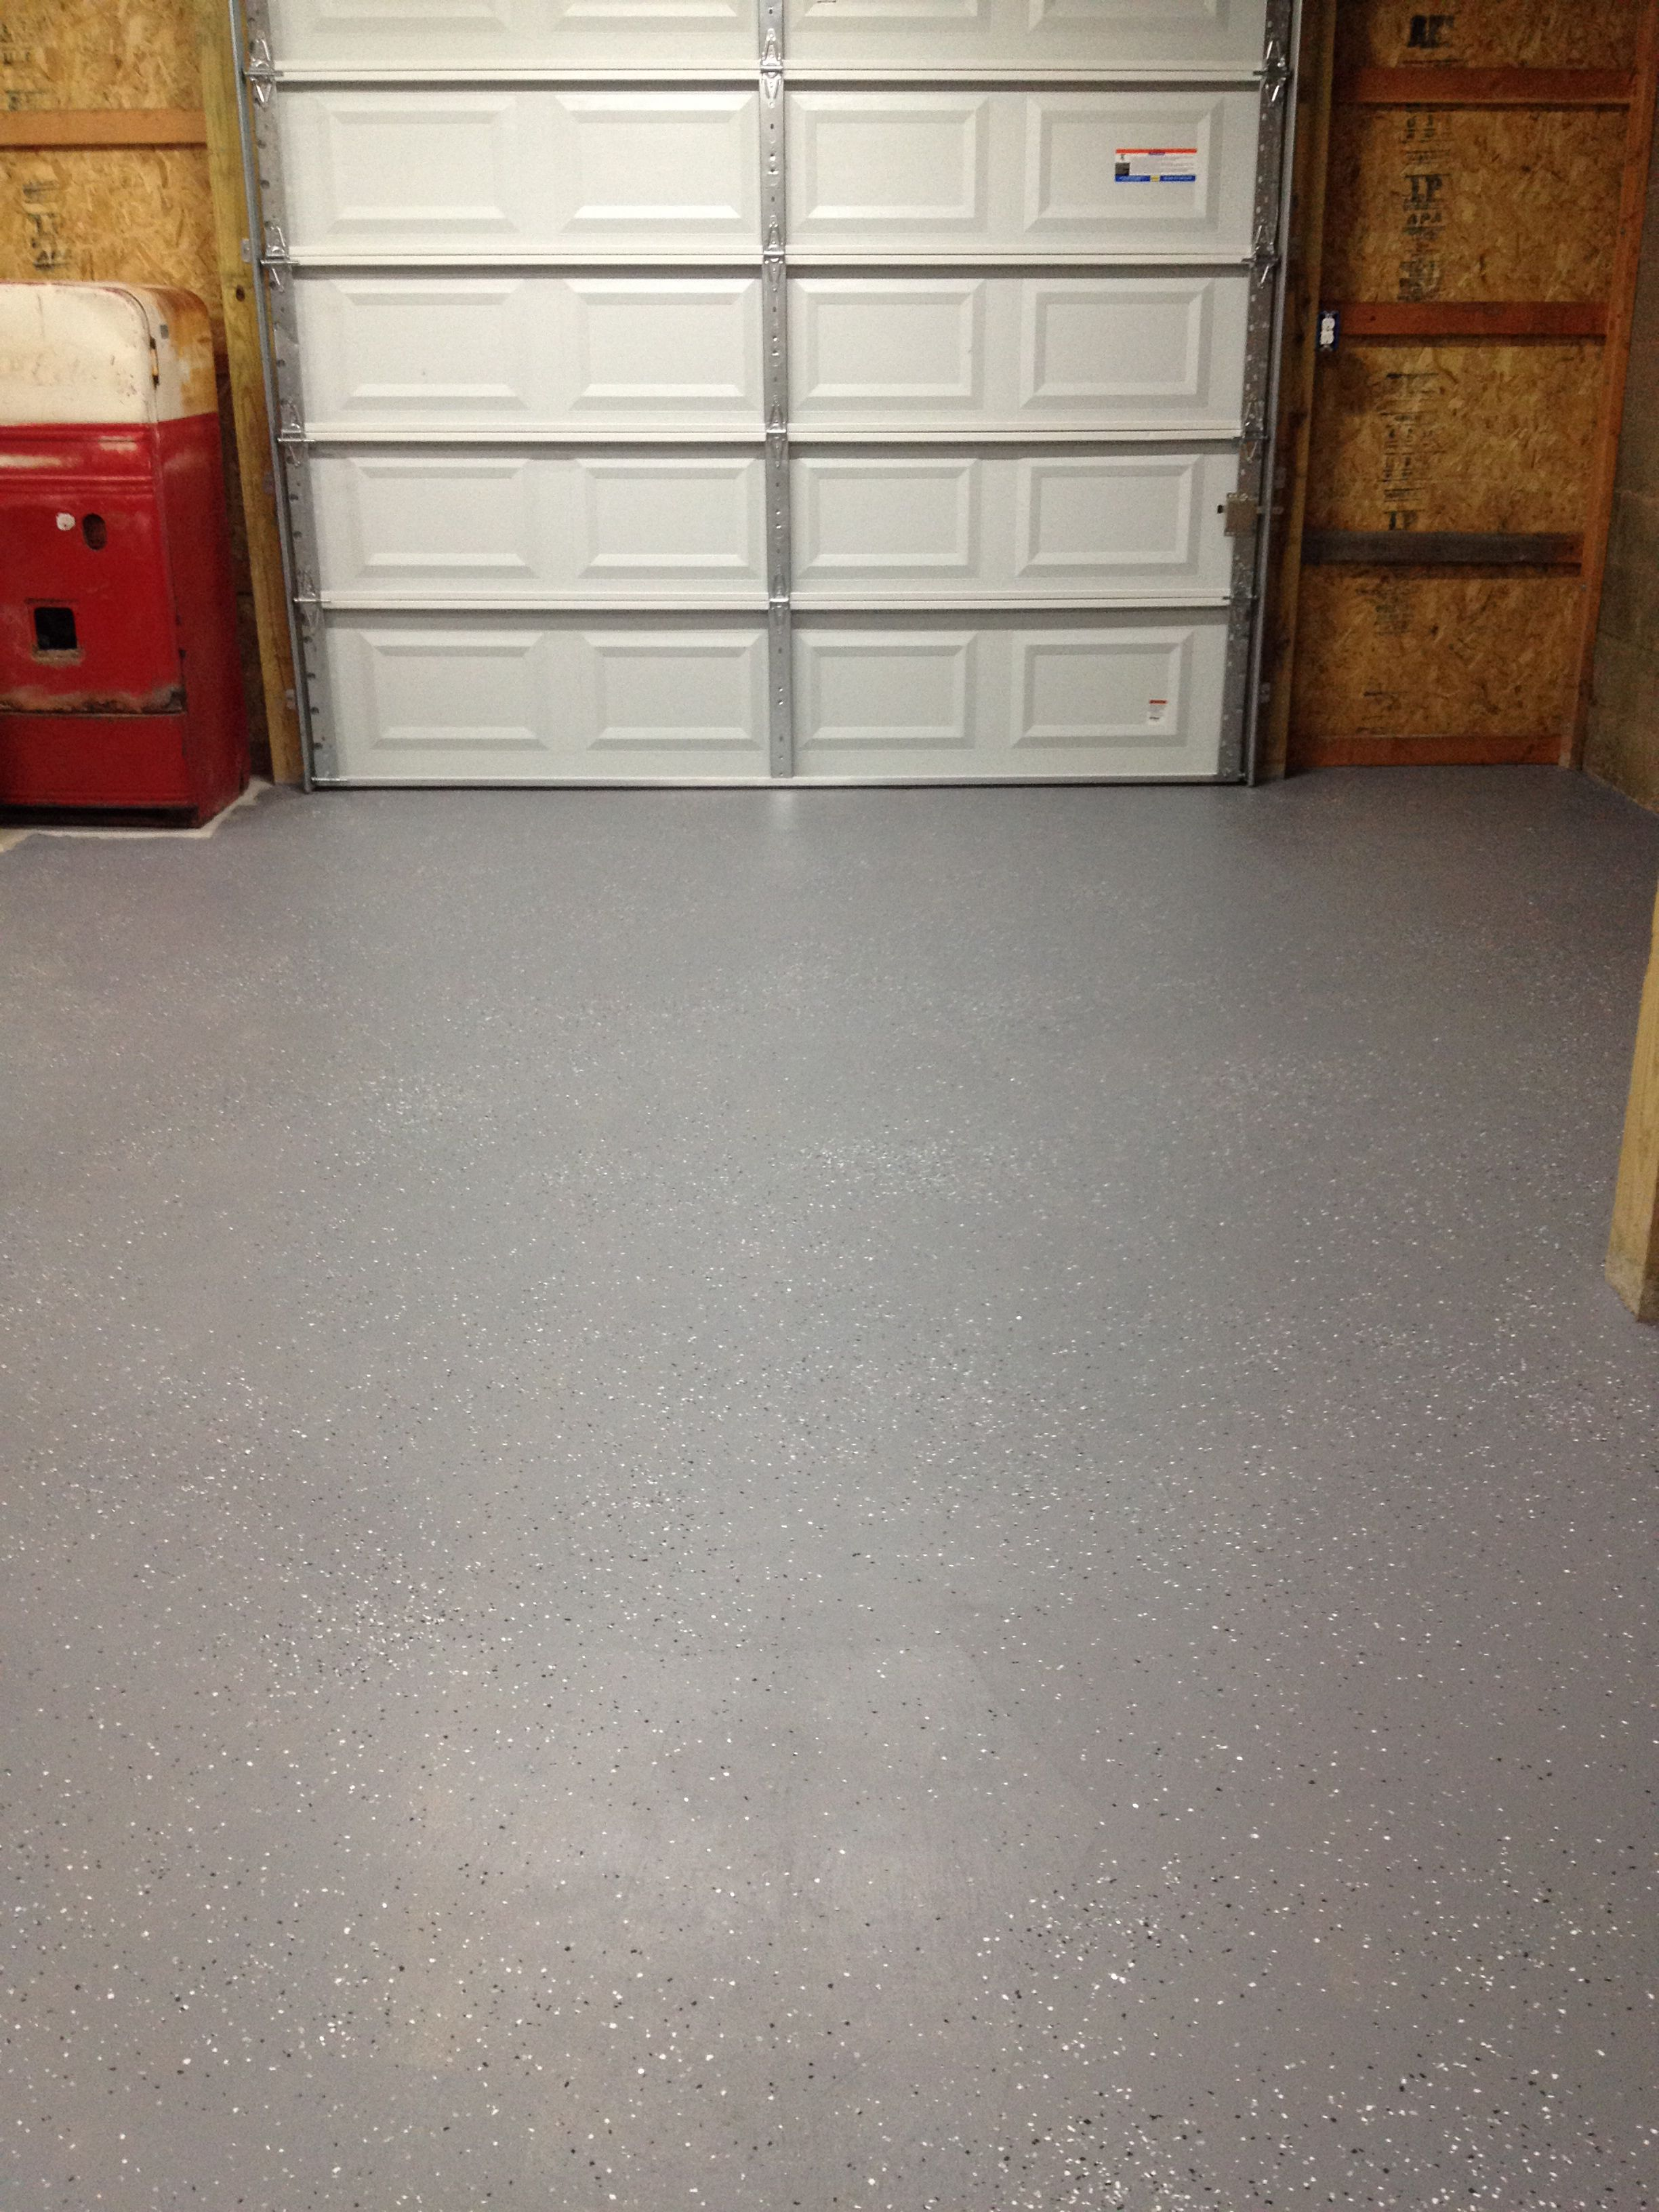 Behr 1 Part Epoxy Garage Floor Paint With Metallic Flakes From The Home Depot 31 Gallon Plus Flake Garage Floor Paint Garage Floor Epoxy Garage Floor Coatings